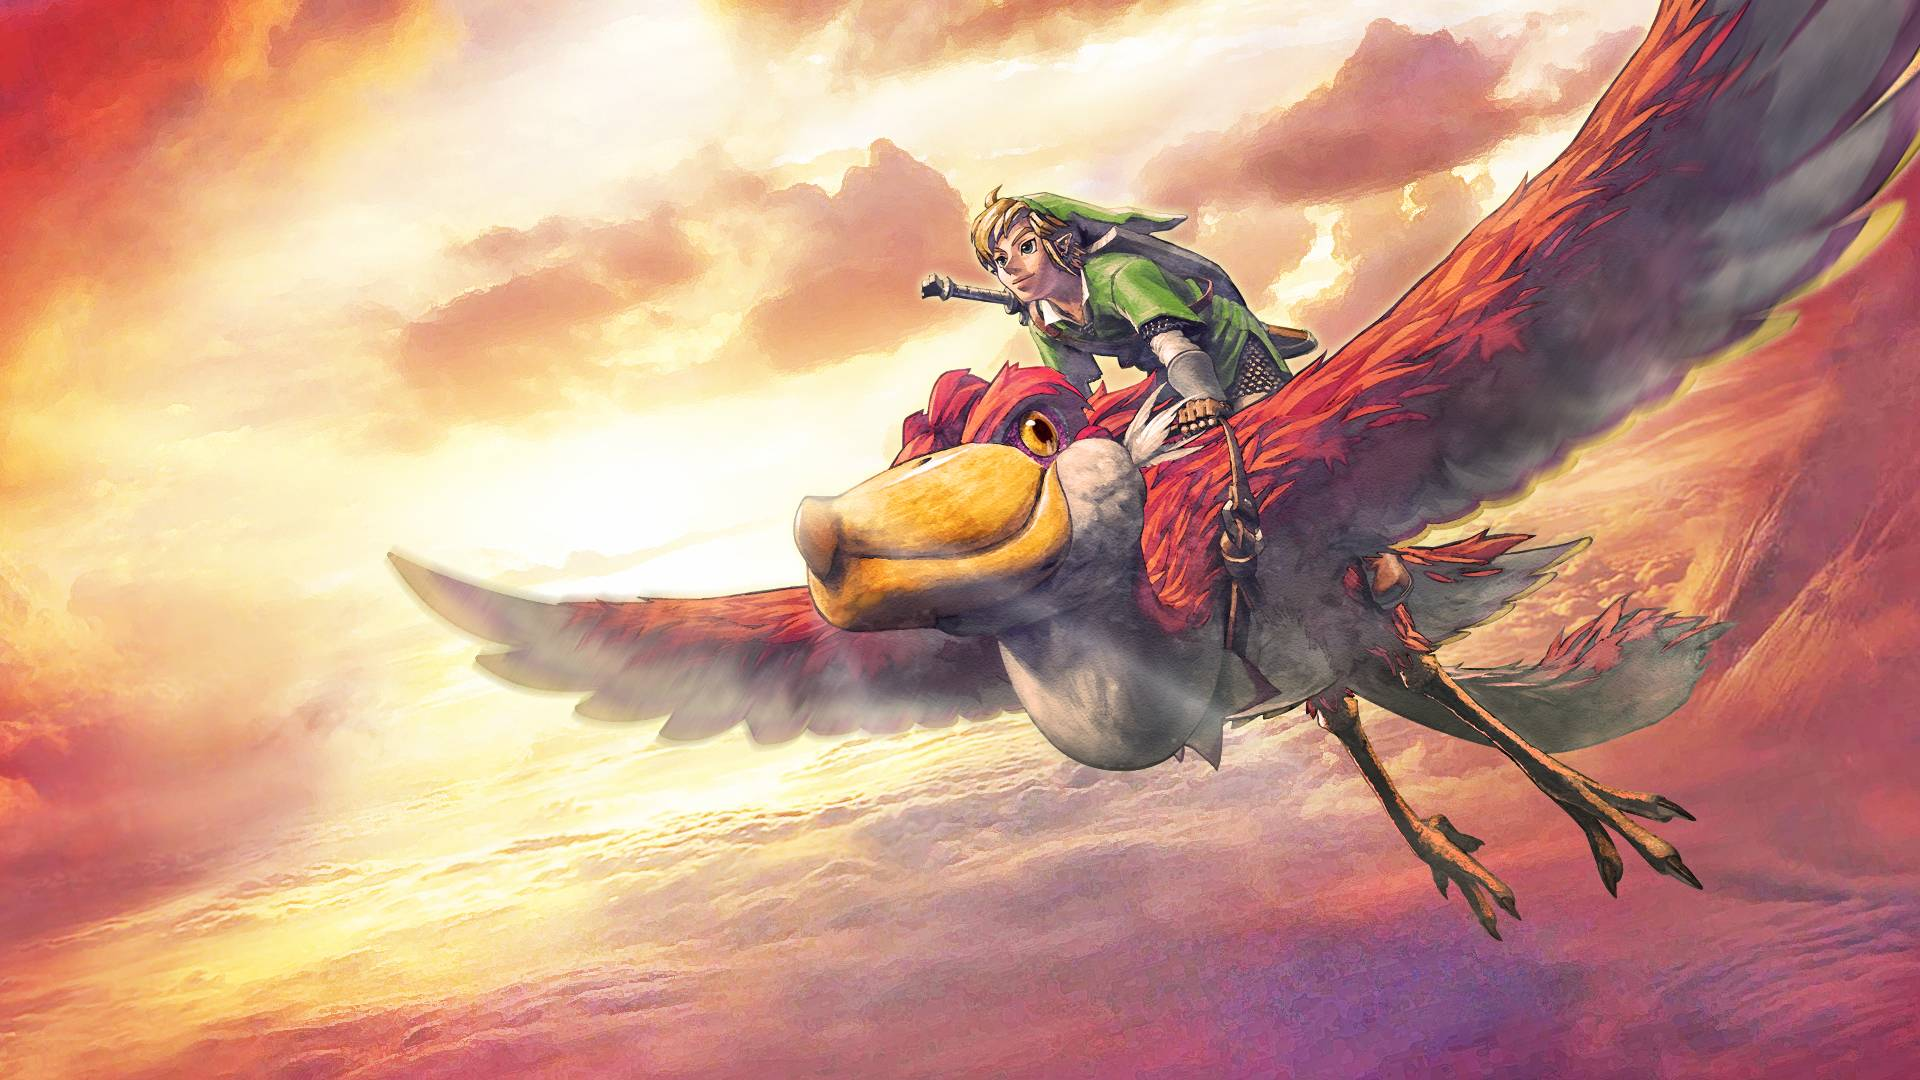 hd zelda wallpapers - photo #12